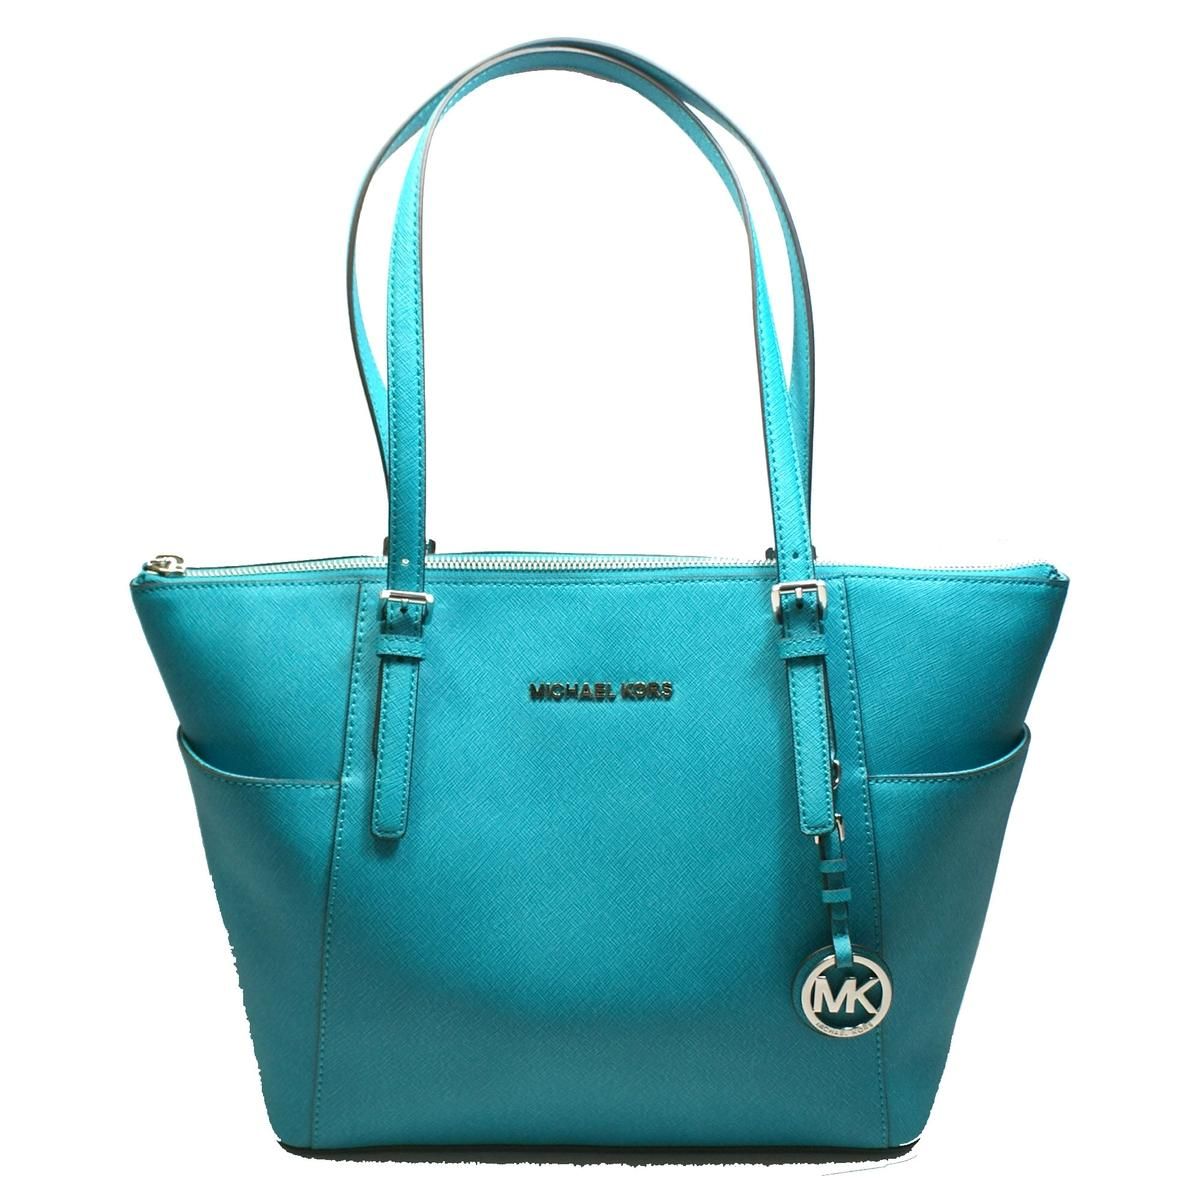 914bf94037f6 Home · Michael Kors · Jet Set East West Leather Top Zip Tote Tile Blue.  CLICK THUMBNAIL TO ZOOM. Found In: Handbags